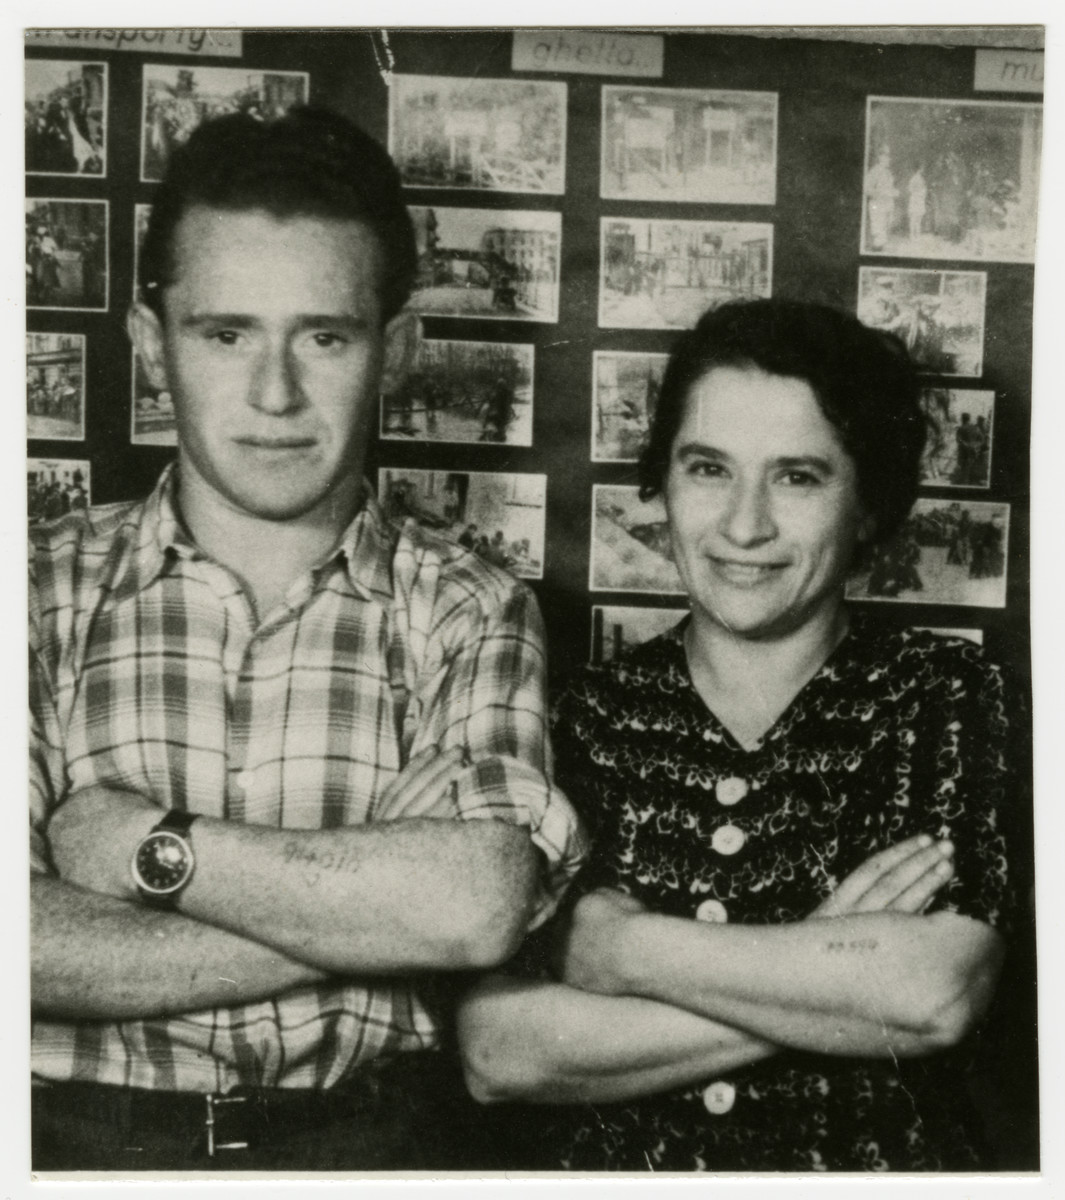 Bronislaw Gelczynski (Abraham Gordon) and an unidentified woman pose in front of a display of Holocaust photographs.